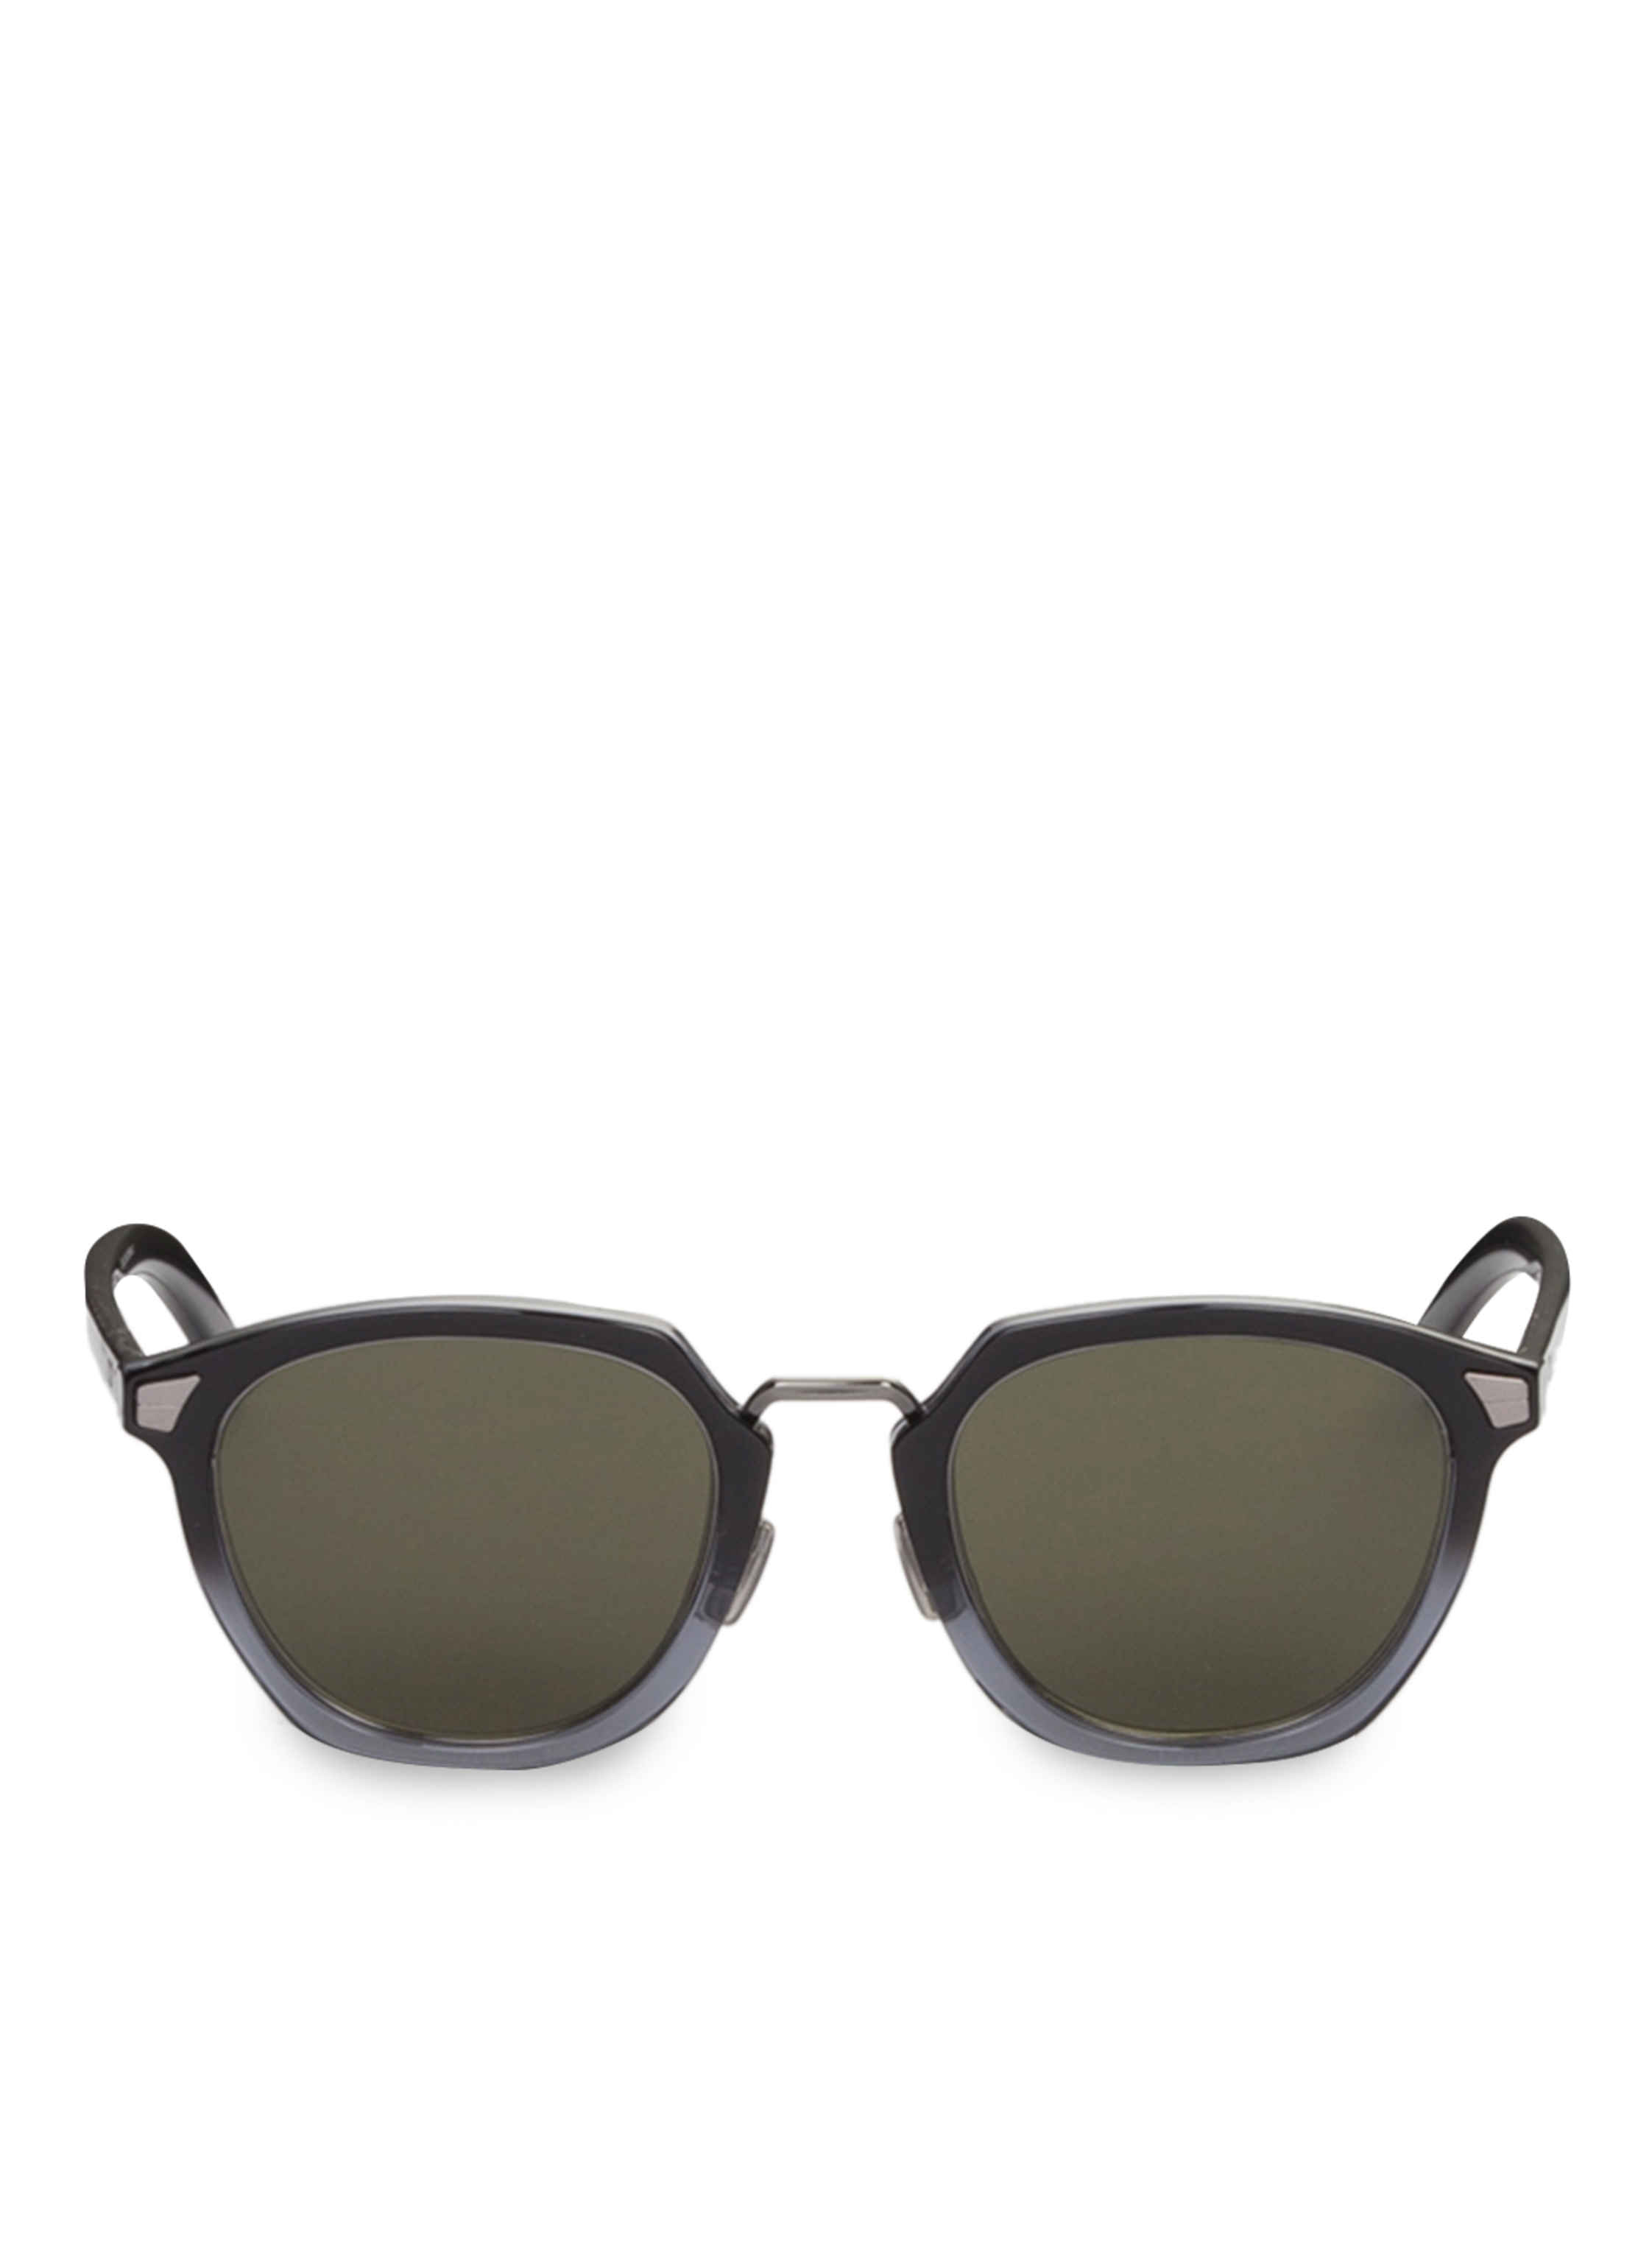 Dior Sunglasses Sonnenbrille DIORTAILORING1 oxT5Rx